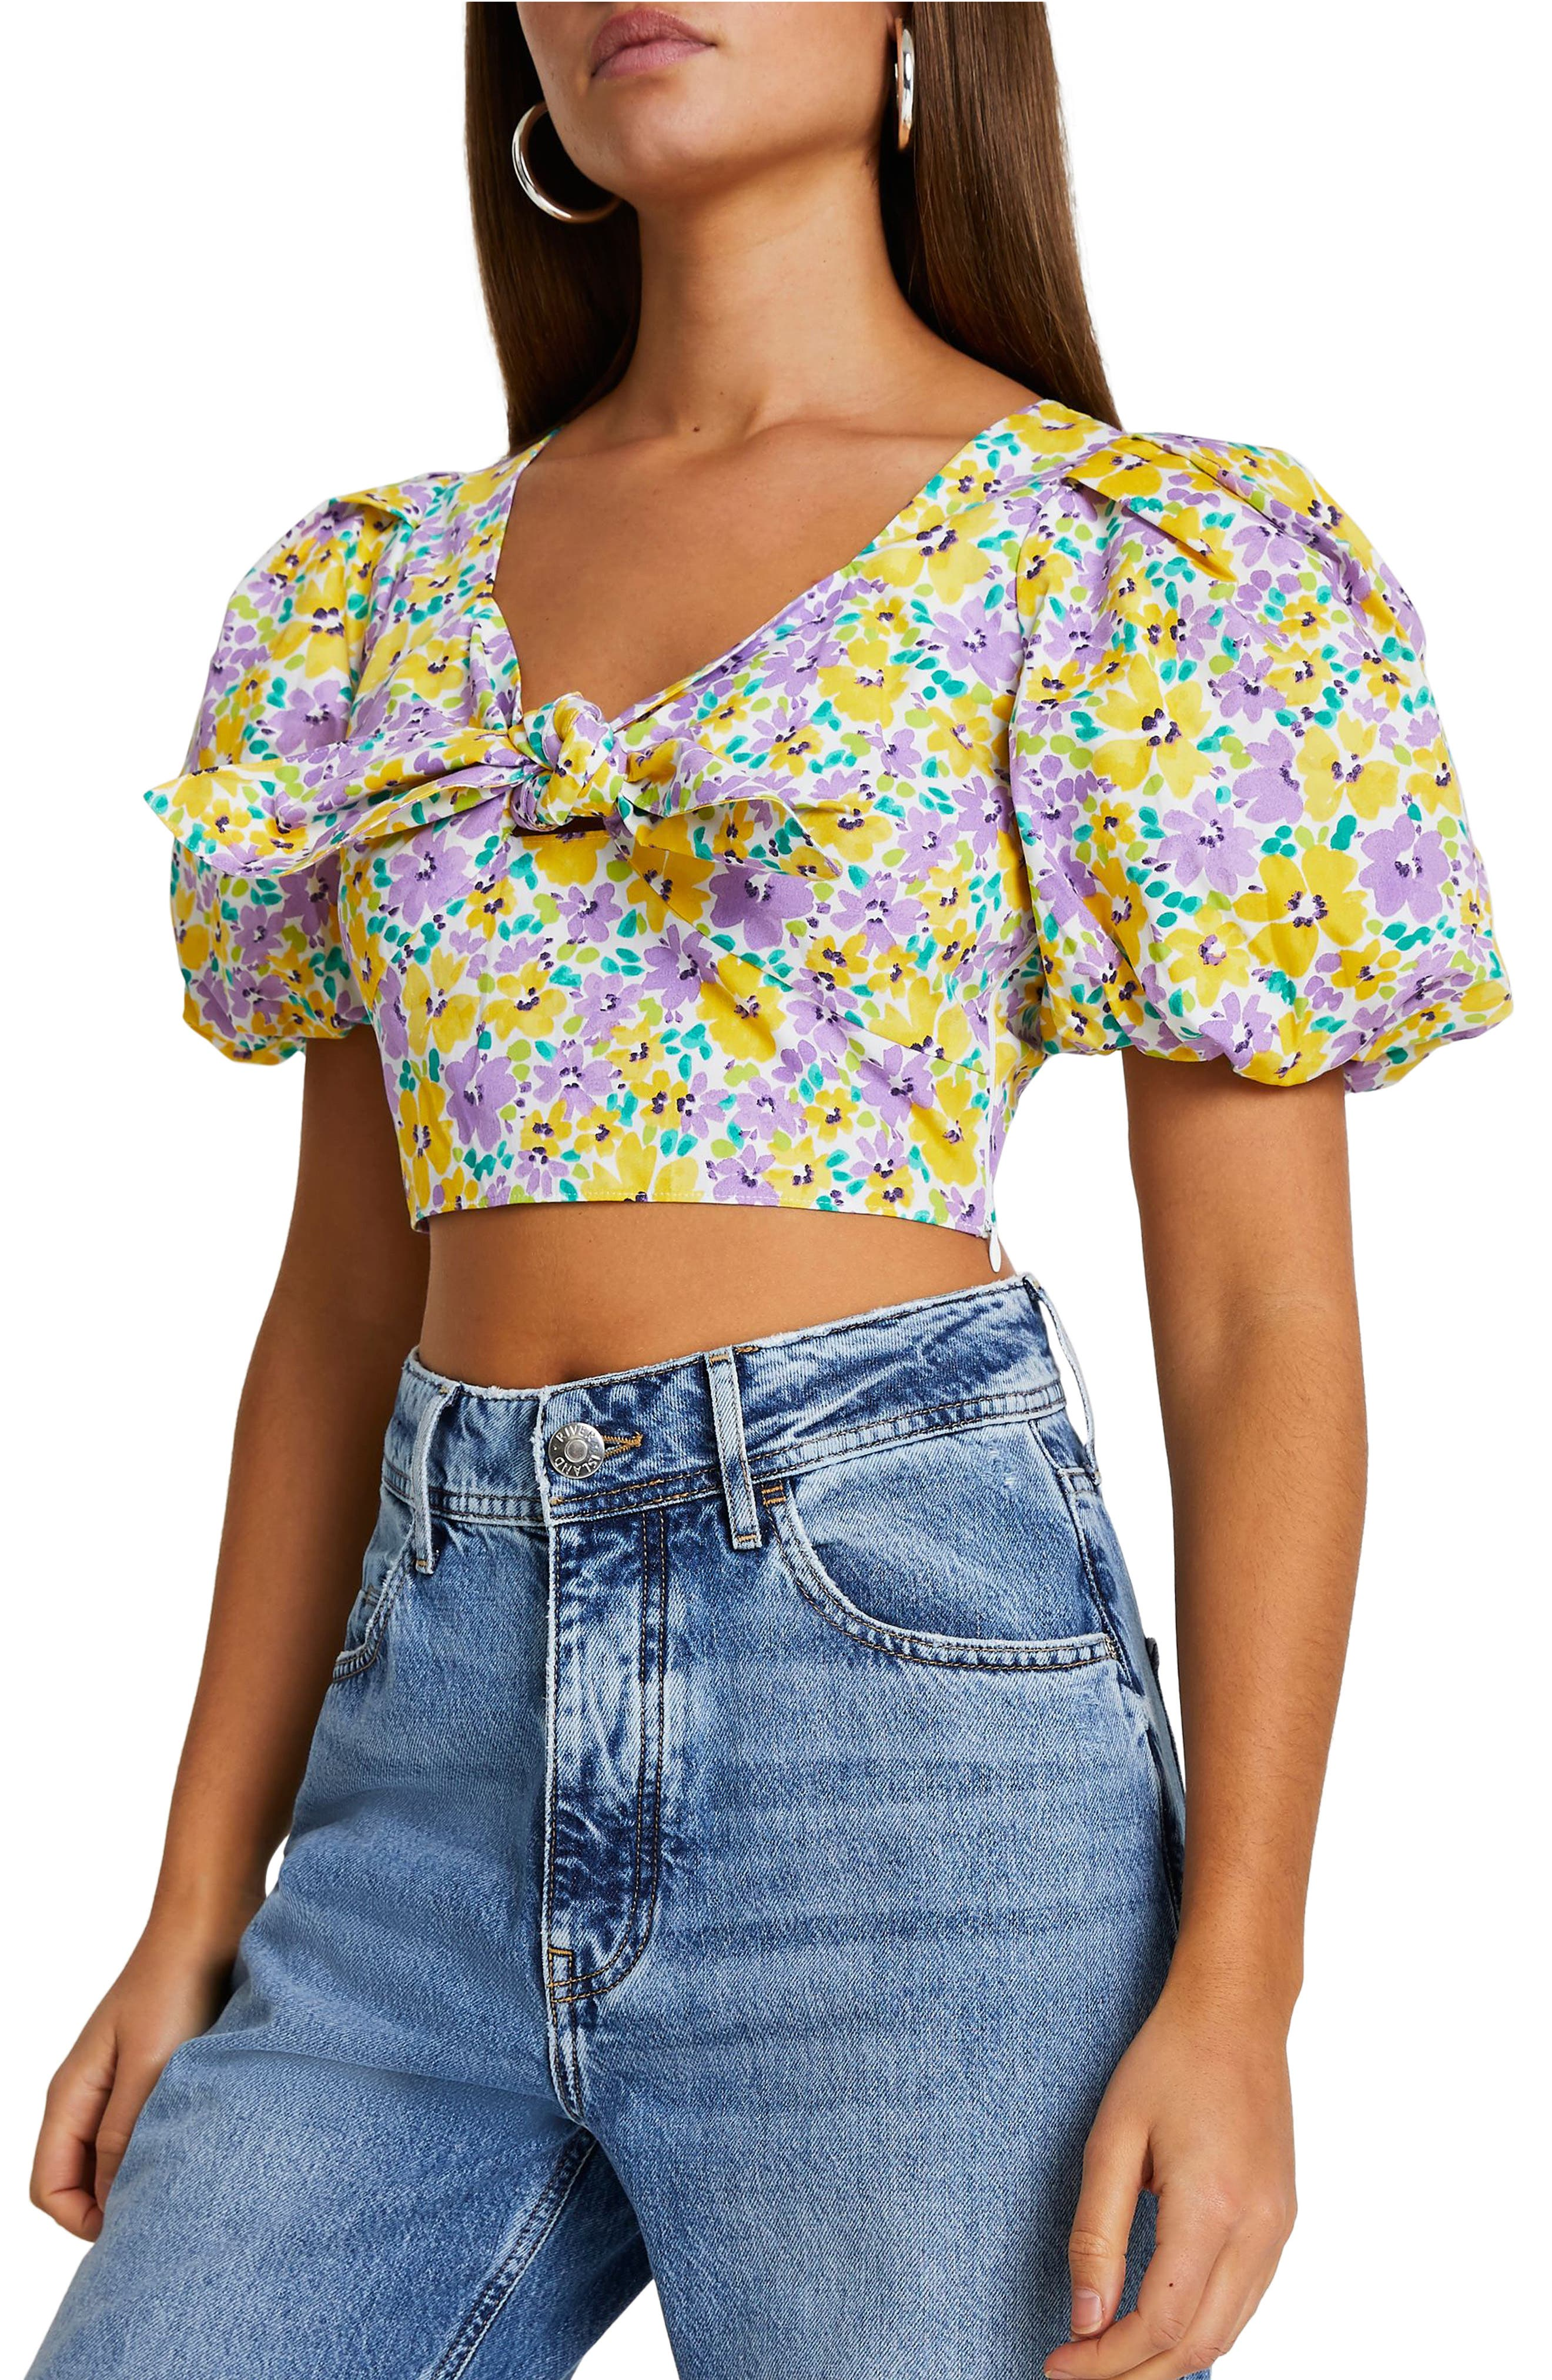 1940s Blouses and Tops Womens River Island Floral Print Puff Sleeve Crop Top Size 12 US - Purple $68.00 AT vintagedancer.com